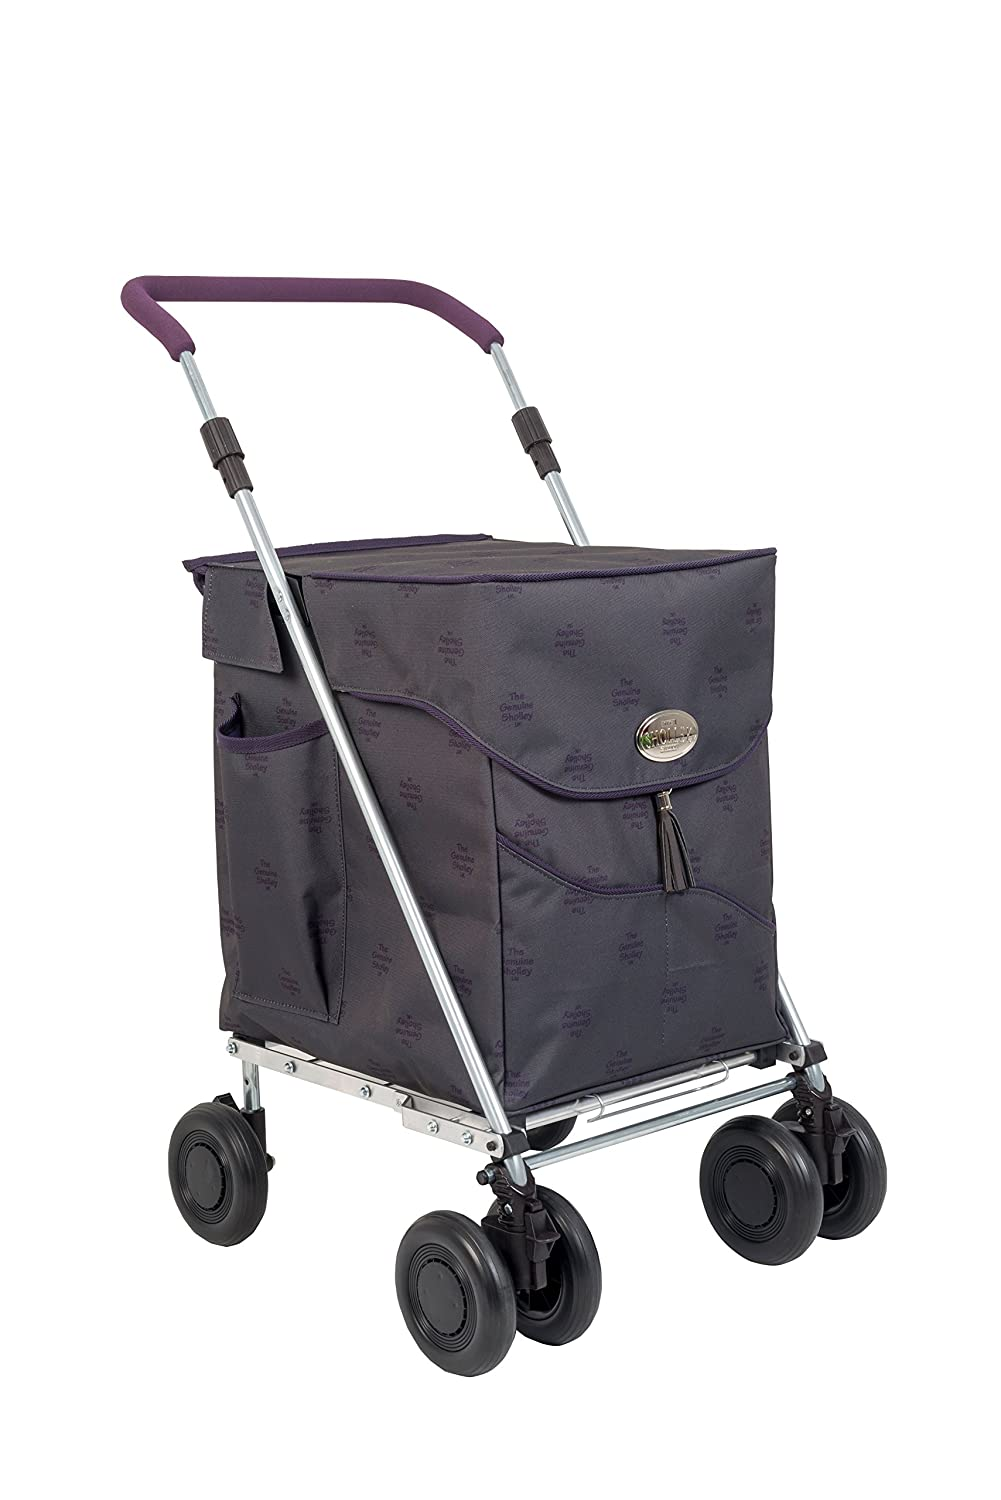 Sholley NEW Deluxe Range - 'The Kensington' Graphite with Purple Piping Design- Foldable Shopping Trolley, Grocery Cart